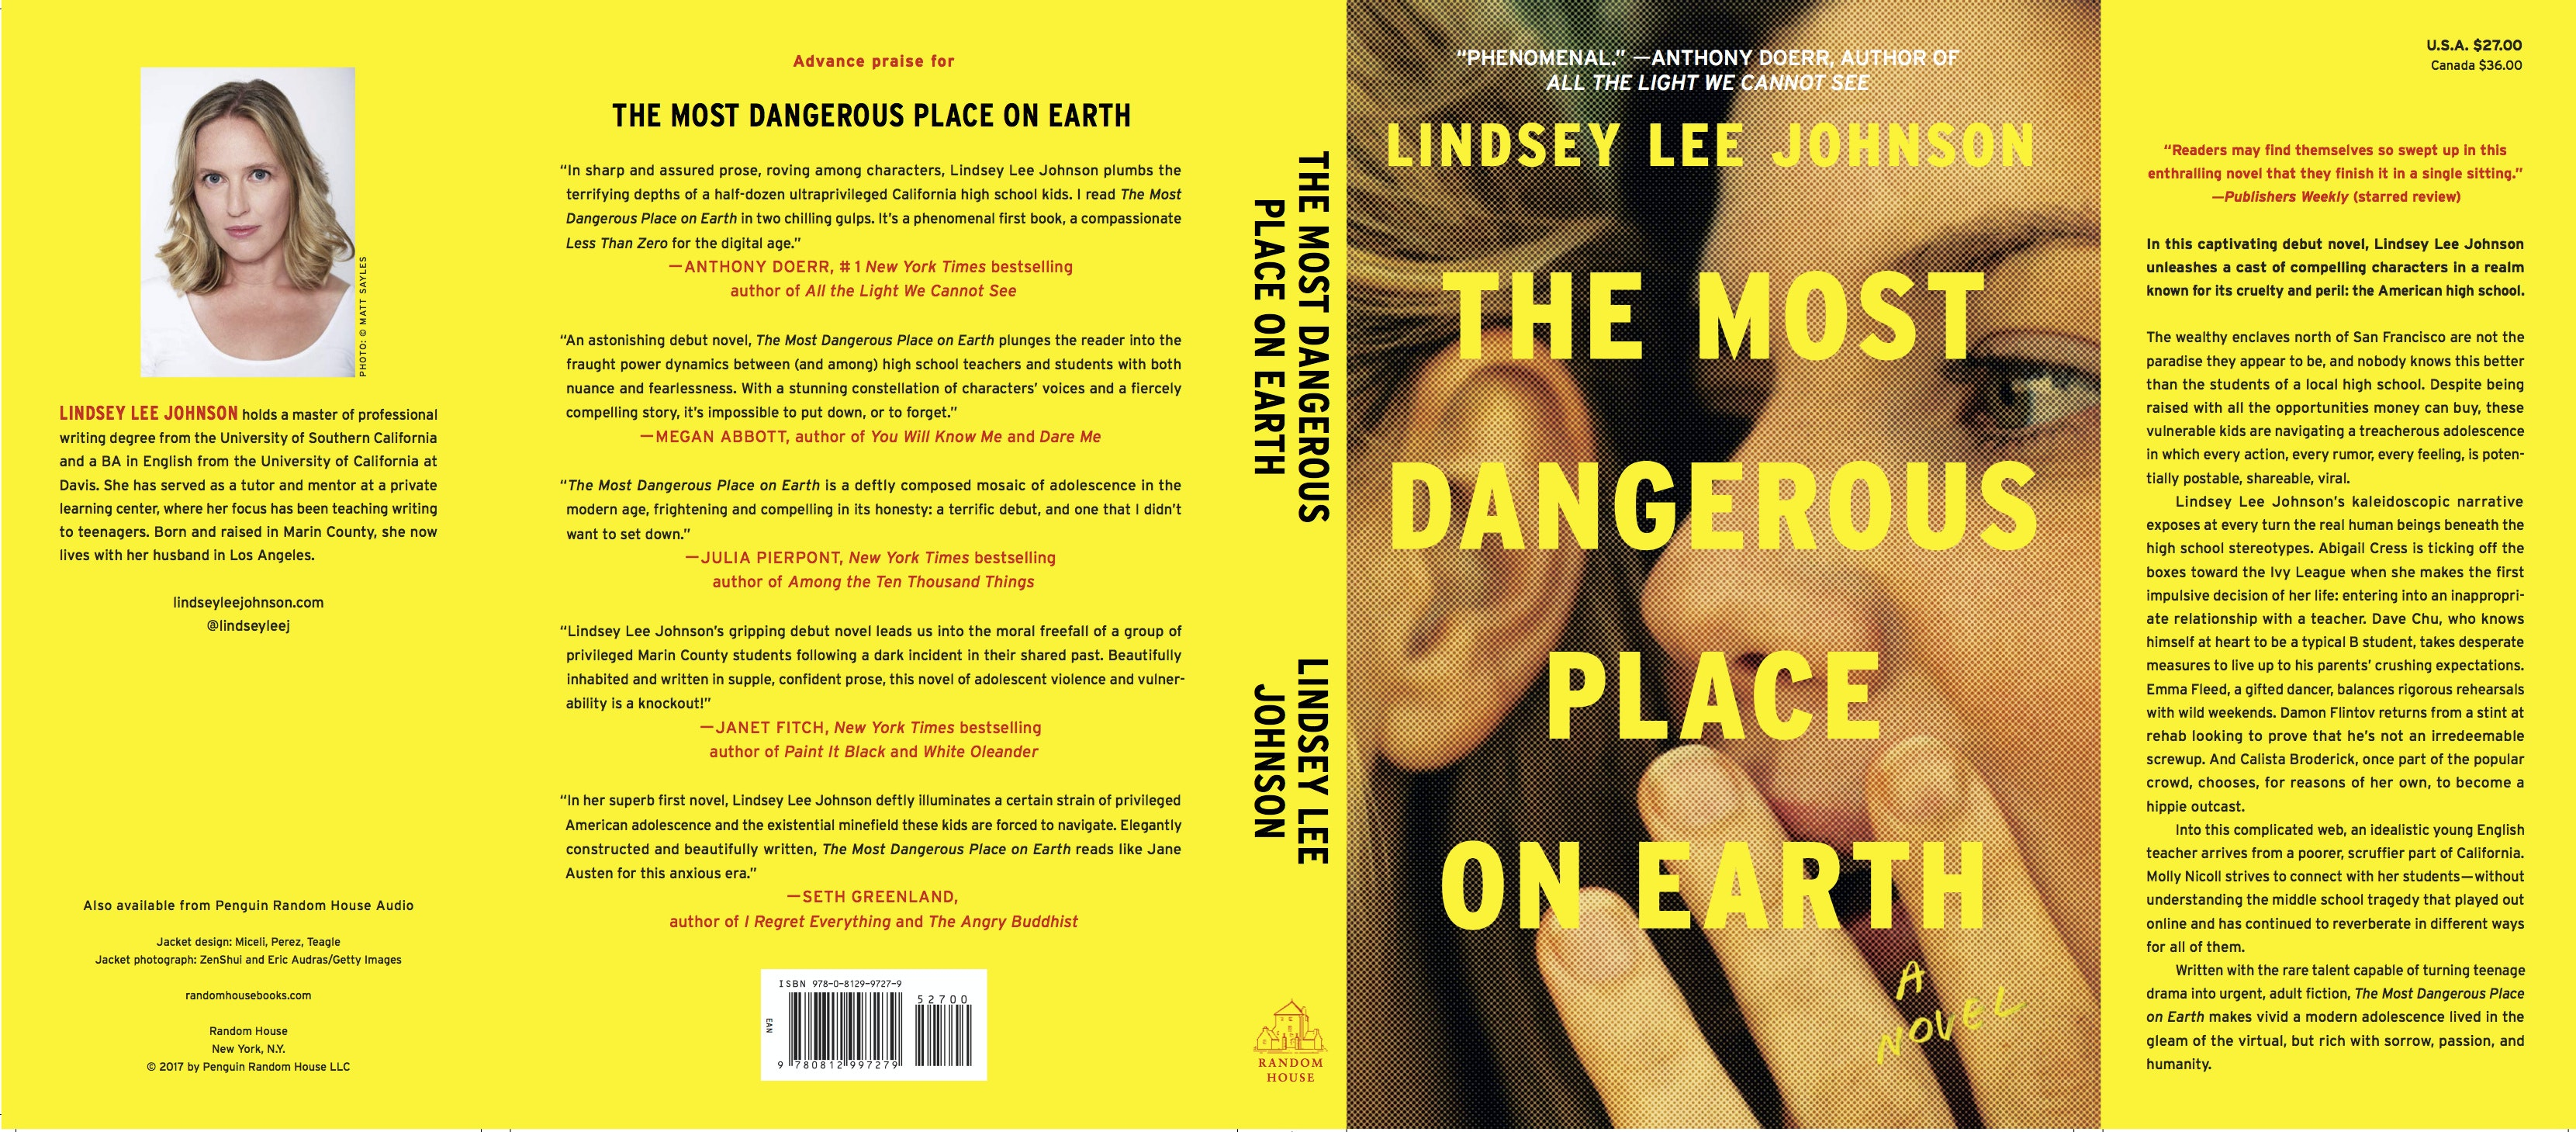 Most Dangerous Place on earth book cover